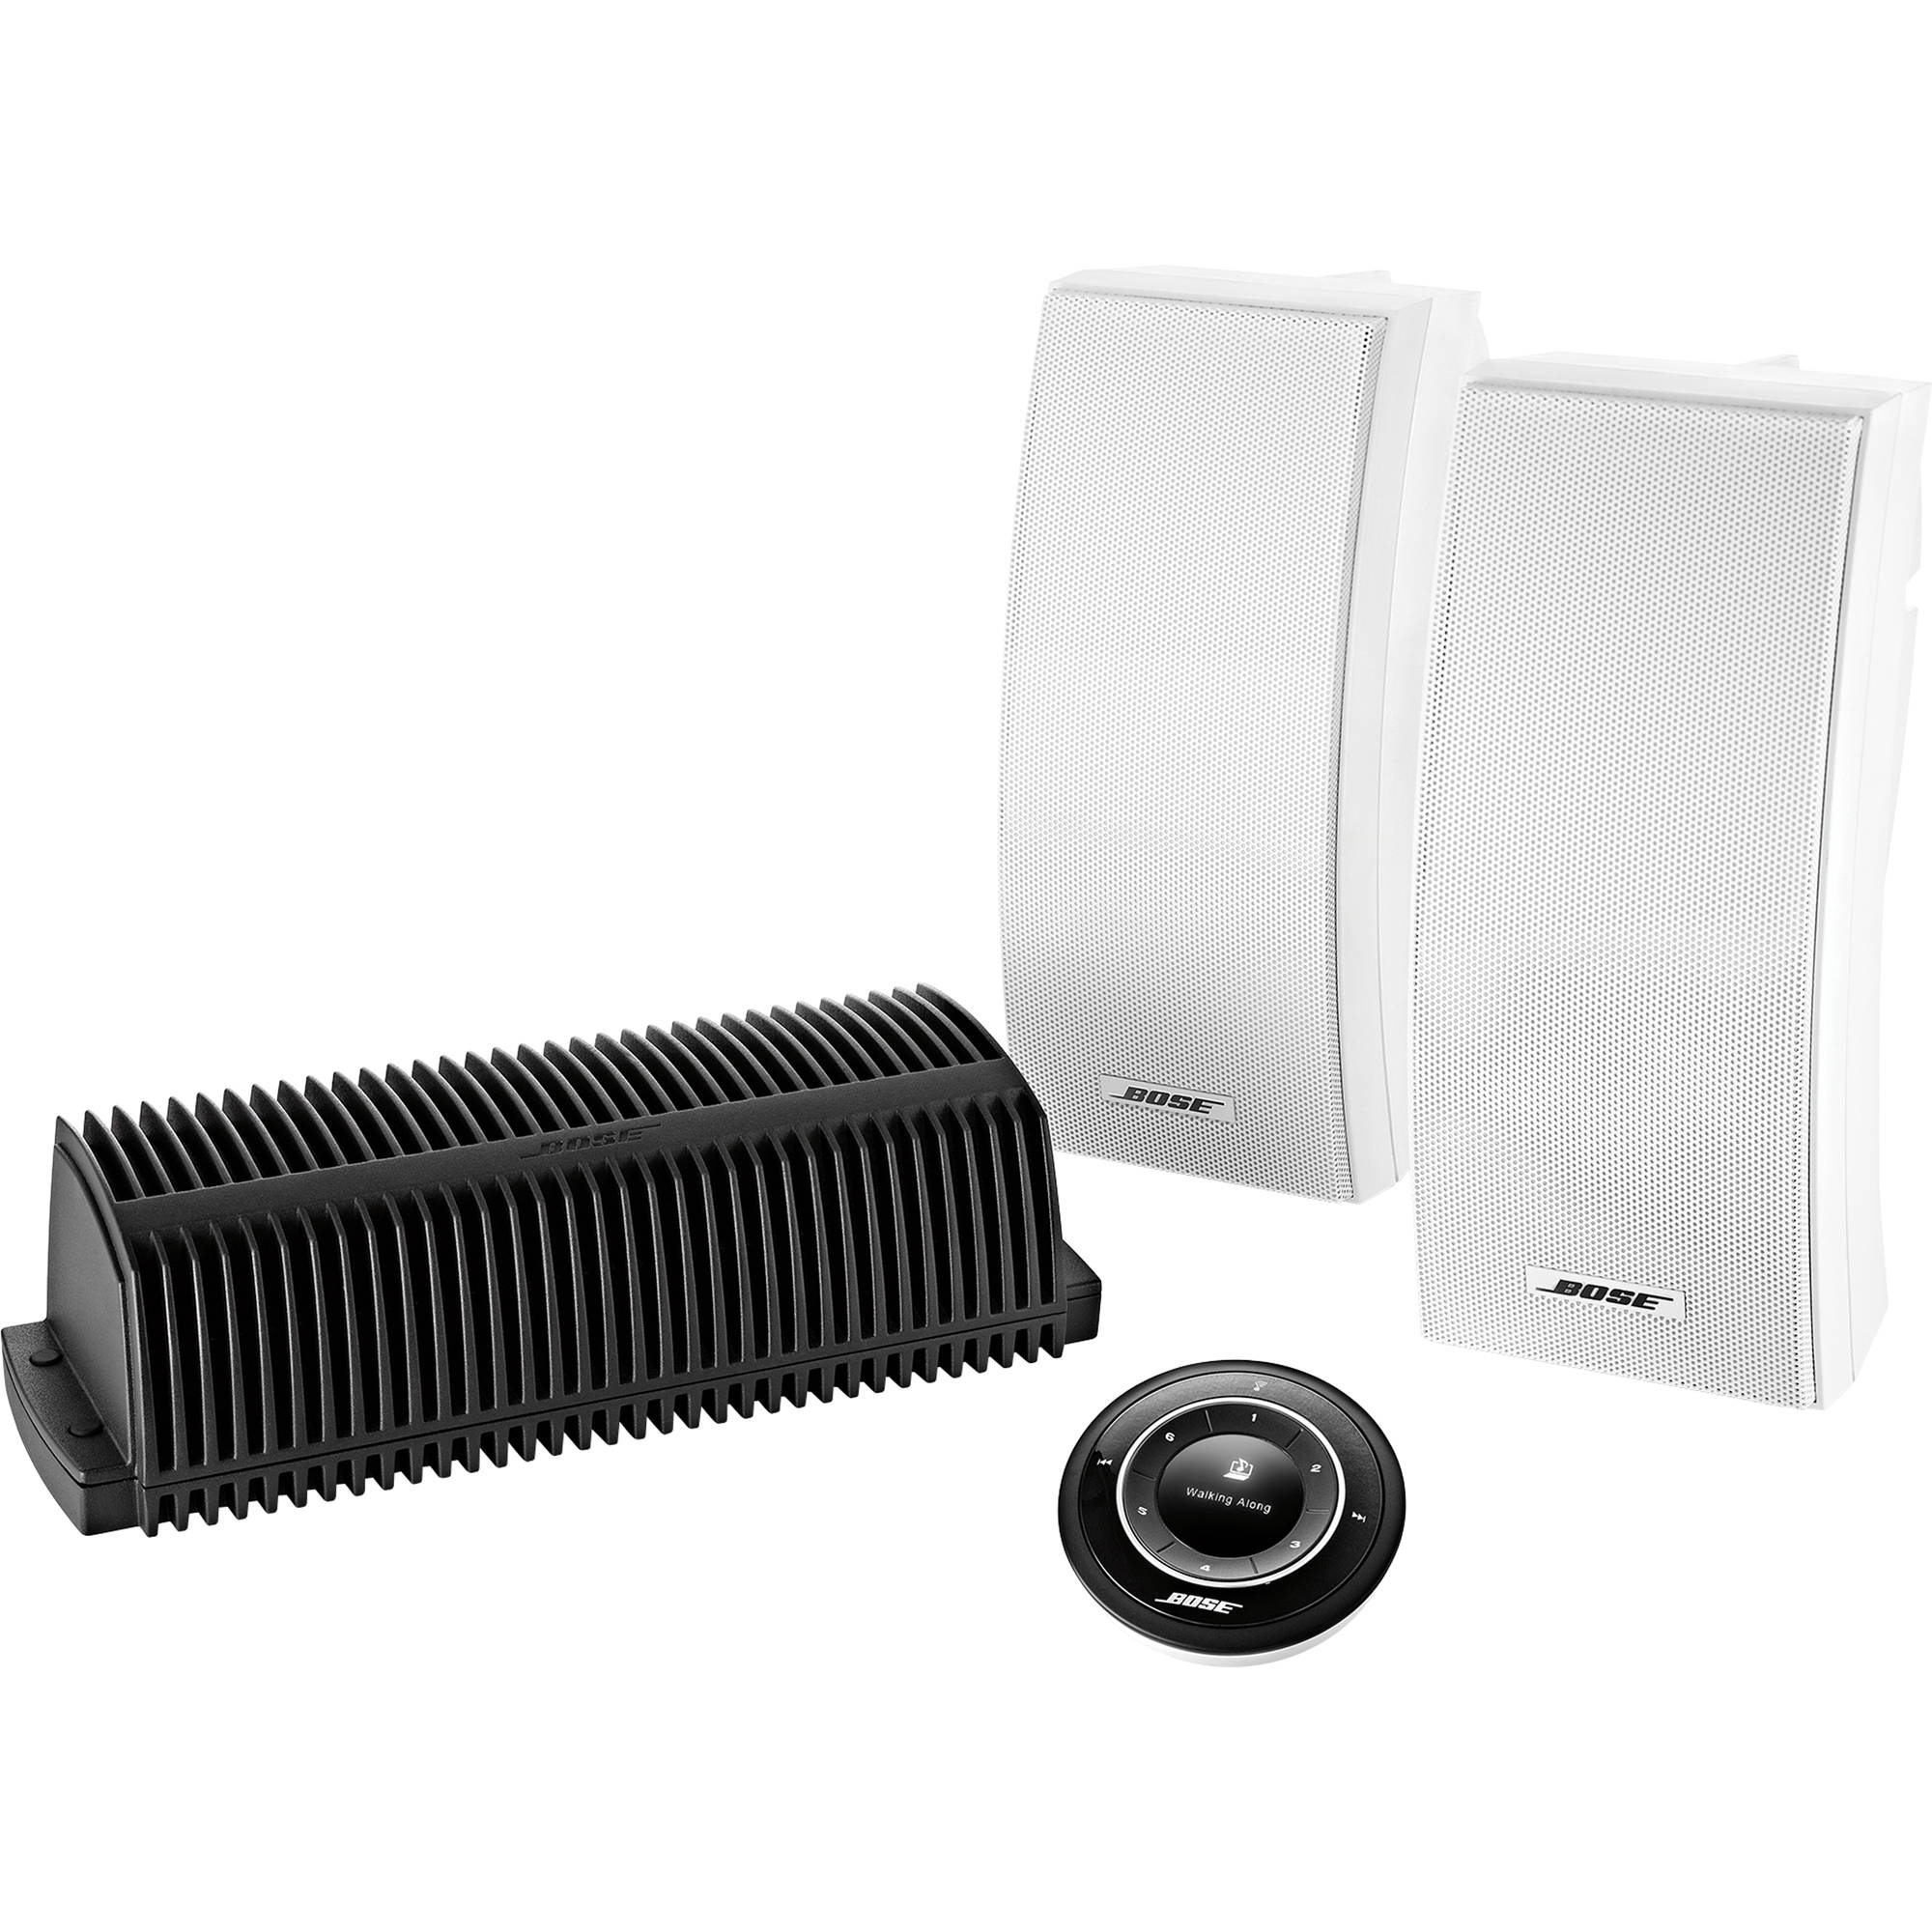 bose soundtouch outdoor speaker system with 251 372032. Black Bedroom Furniture Sets. Home Design Ideas